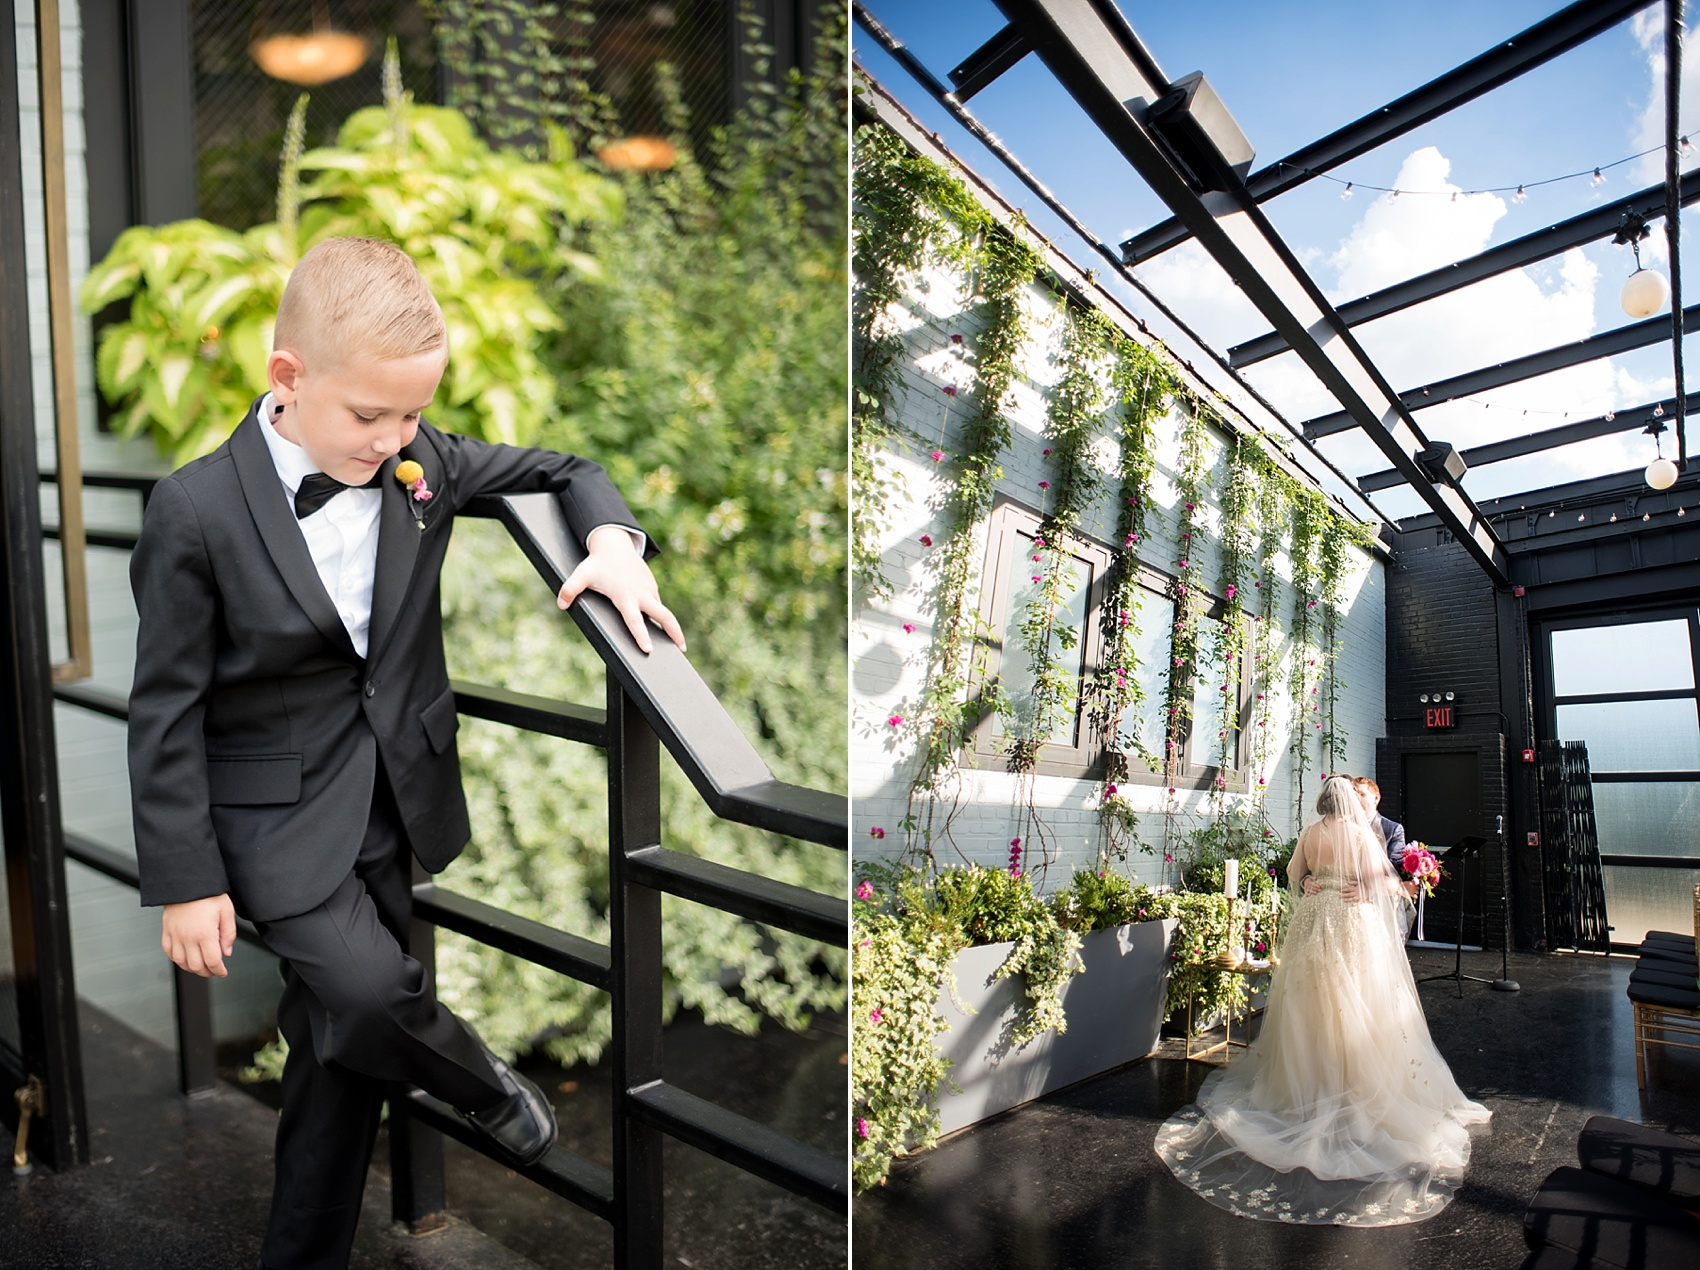 501 Union lesbian wedding. Photos by Mikkel Paige Photography, in Brooklyn, NYC. Planning by Ashley M Chamblin Events.